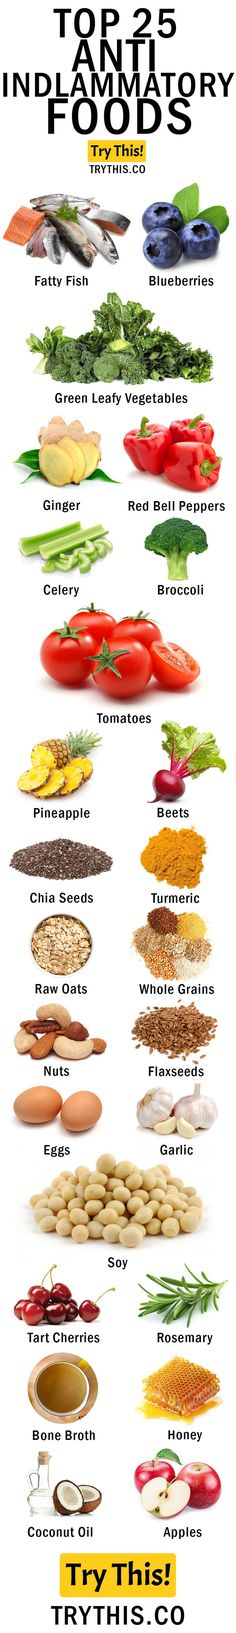 Top 25 Anti-Inflammatory Foods http://healthyquickly.com/27-proven-tummy-tightening-foods/